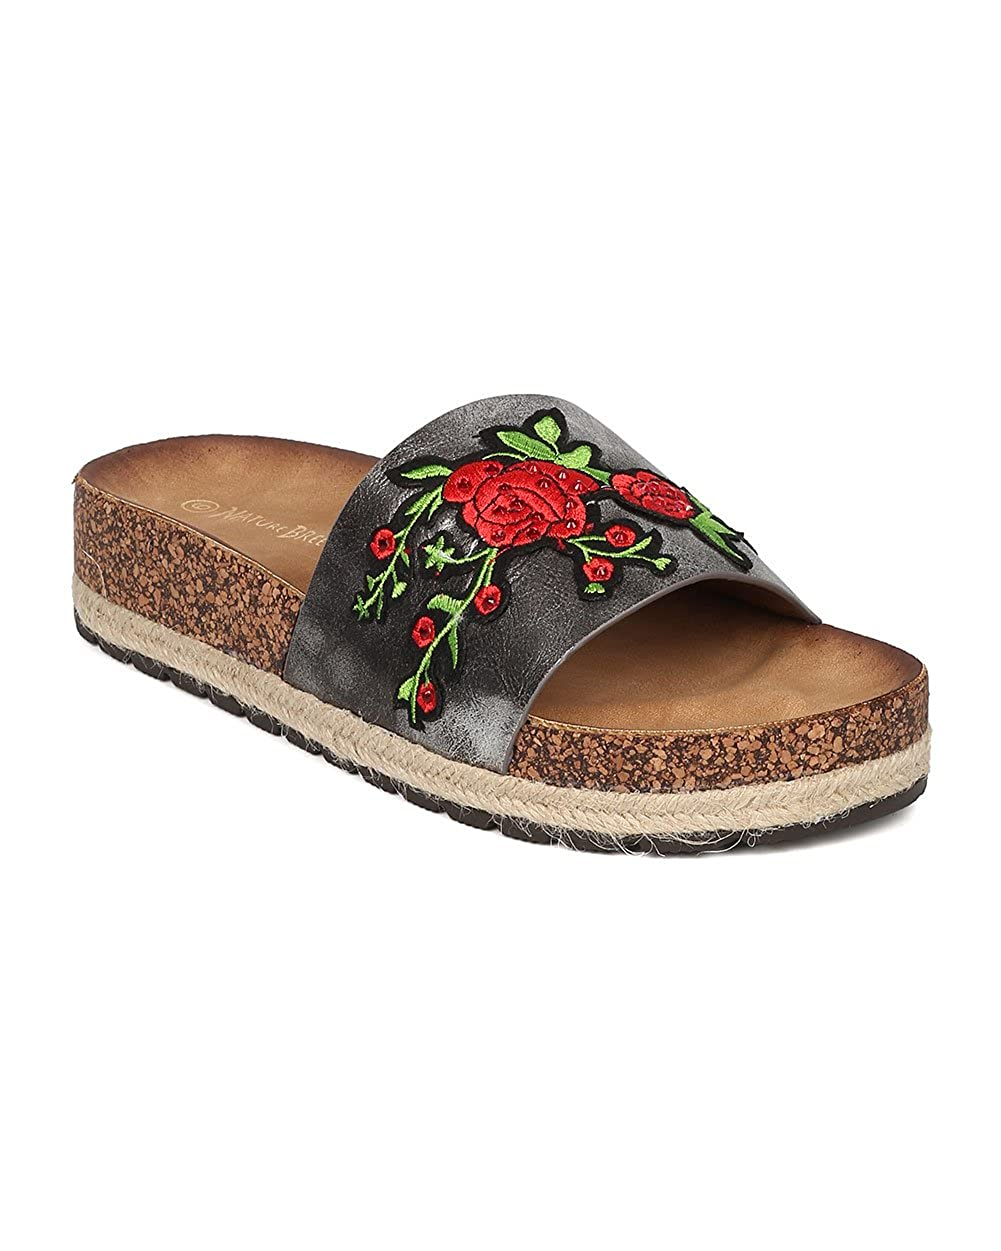 GH94 Roses Footbed Sandal Nature Breeze Women Metallic Embroidered Sandal Espadrille Slide